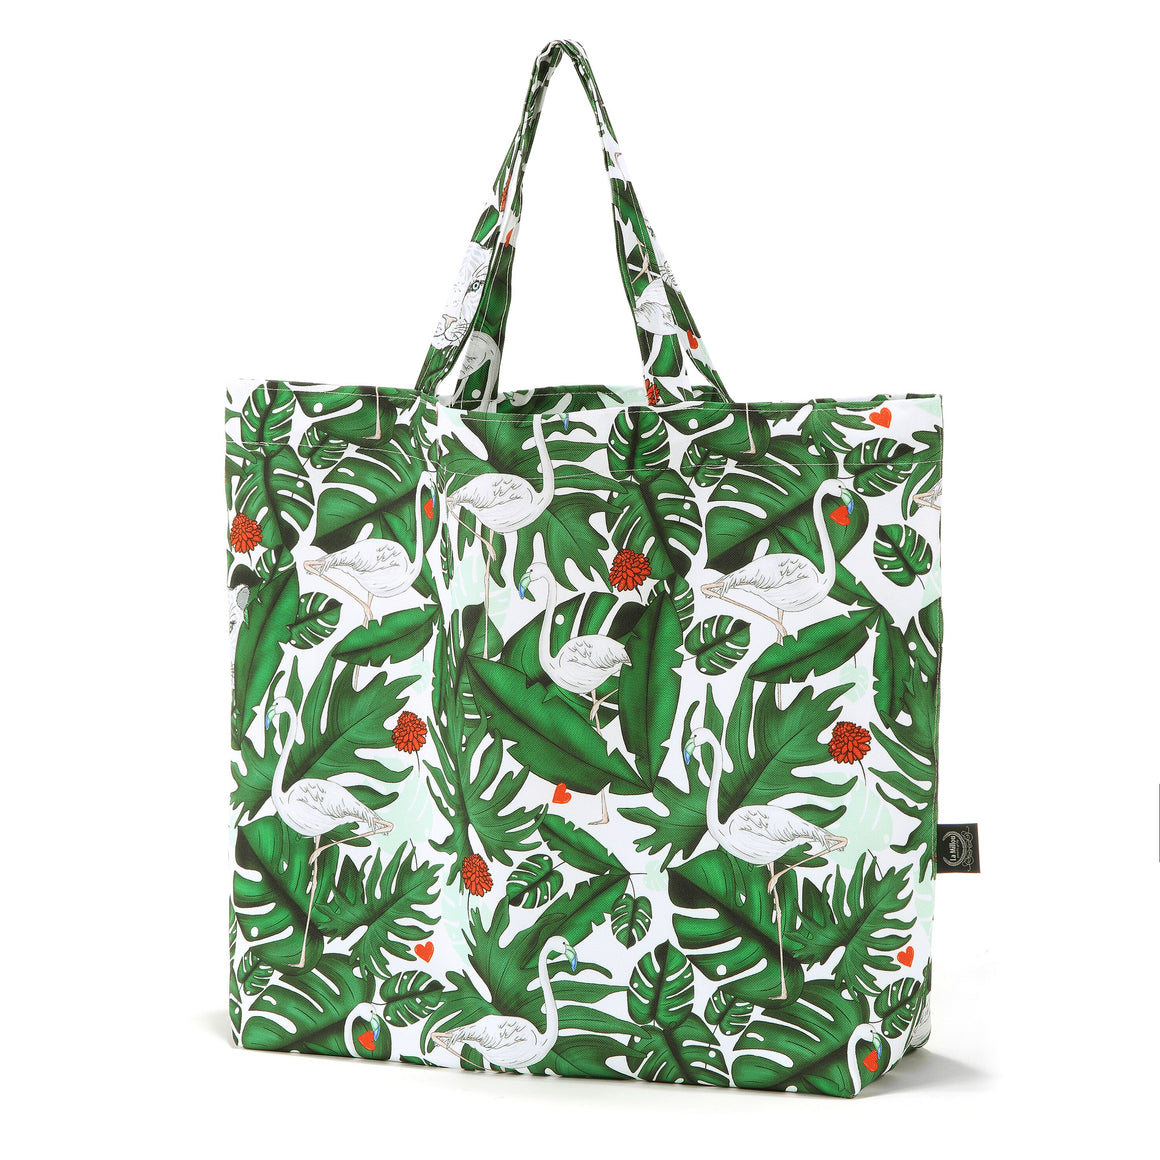 SHOPPER BAG for summer - Evergreen Tiger